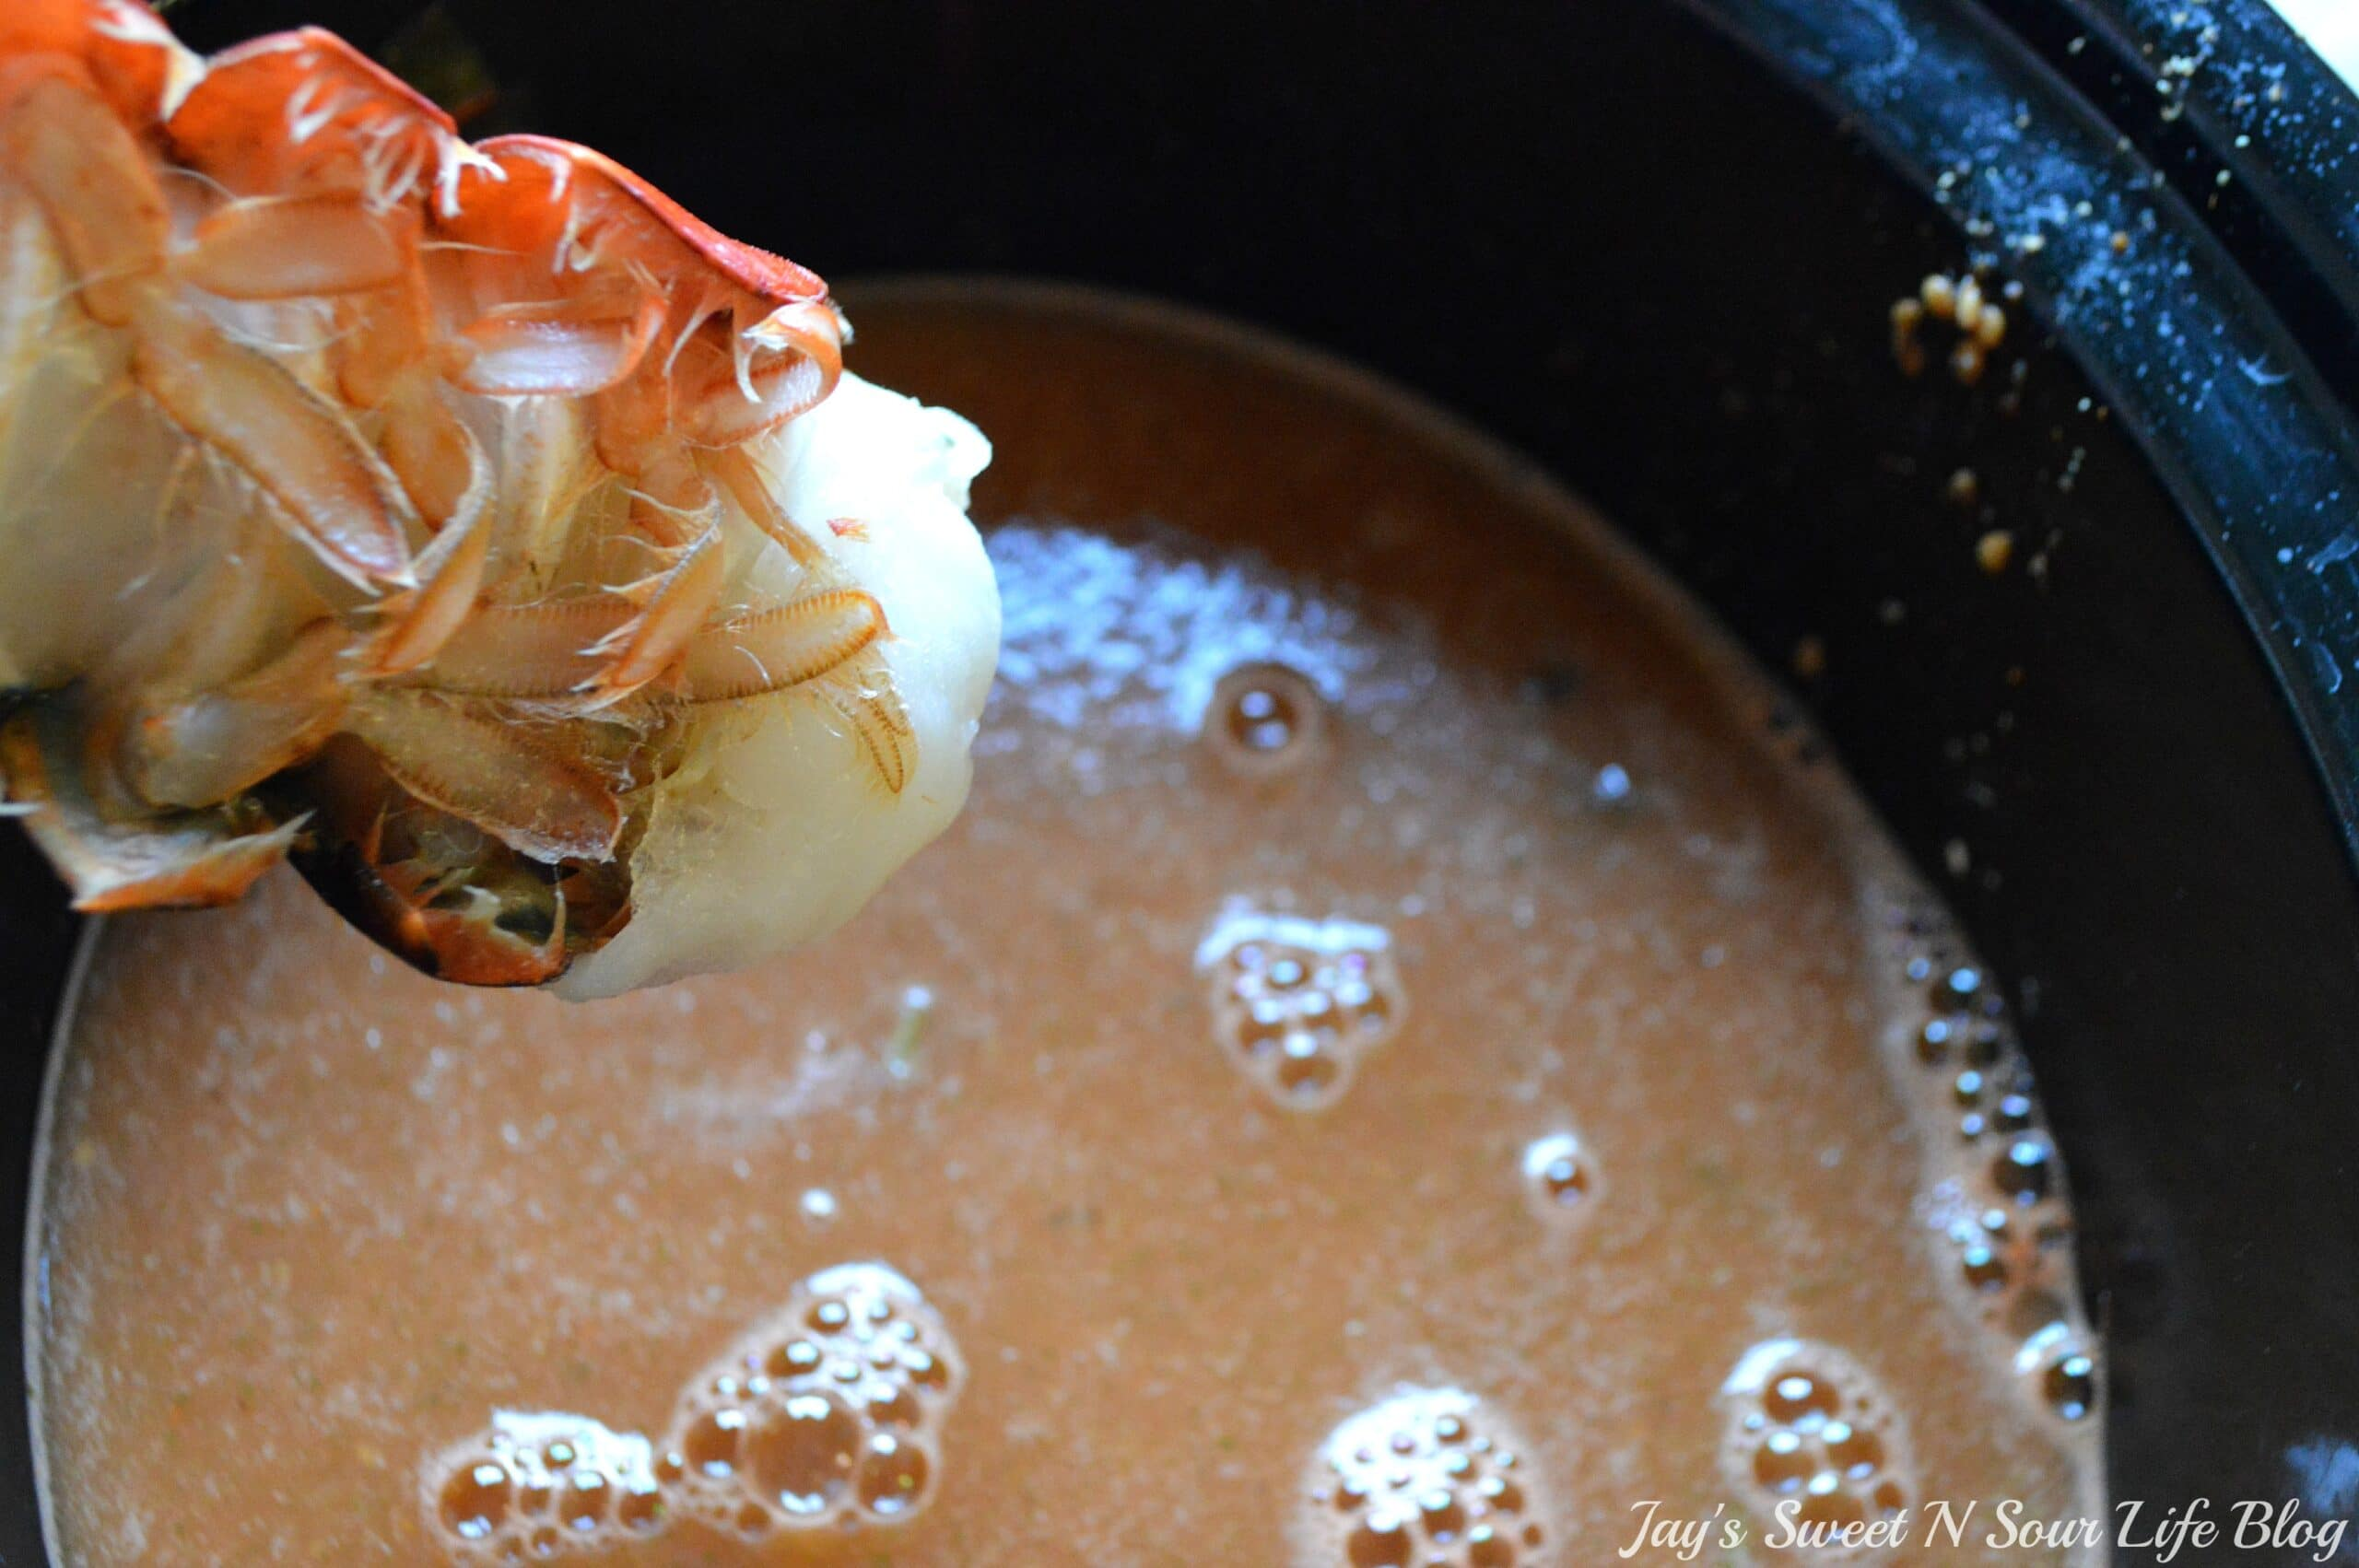 Lobster Bisque Step 14. A smooth and creamy Slow Cooker Lobster Bisque Soup that's always a family favorite. It's a creamy and spicy soup that uses lobster tails for a flavorful rich bisque. Your family won't believe you made this decadent soup in a crock-pot!